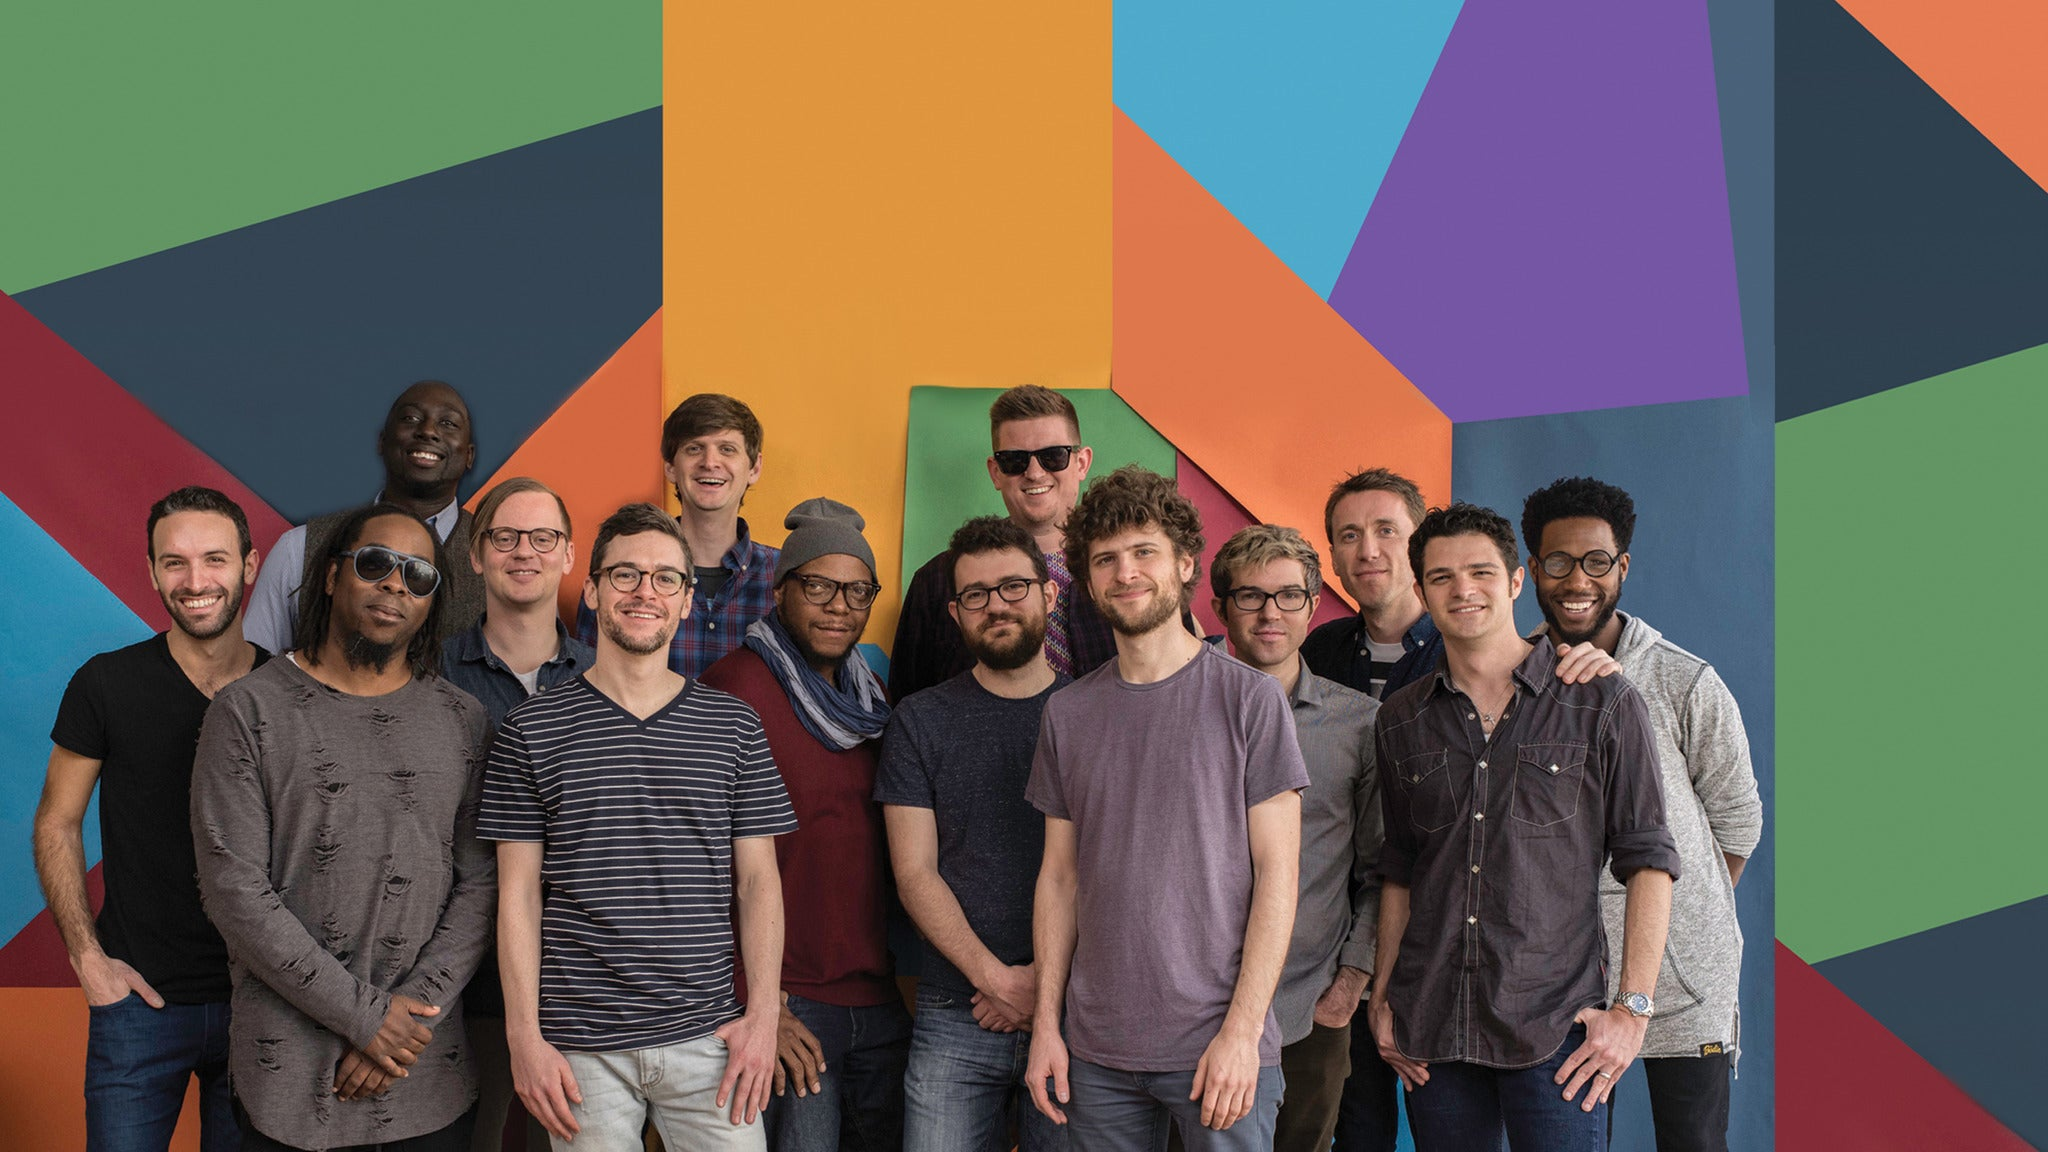 CEG Presents Snarky Puppy at U.S. Cellular Field